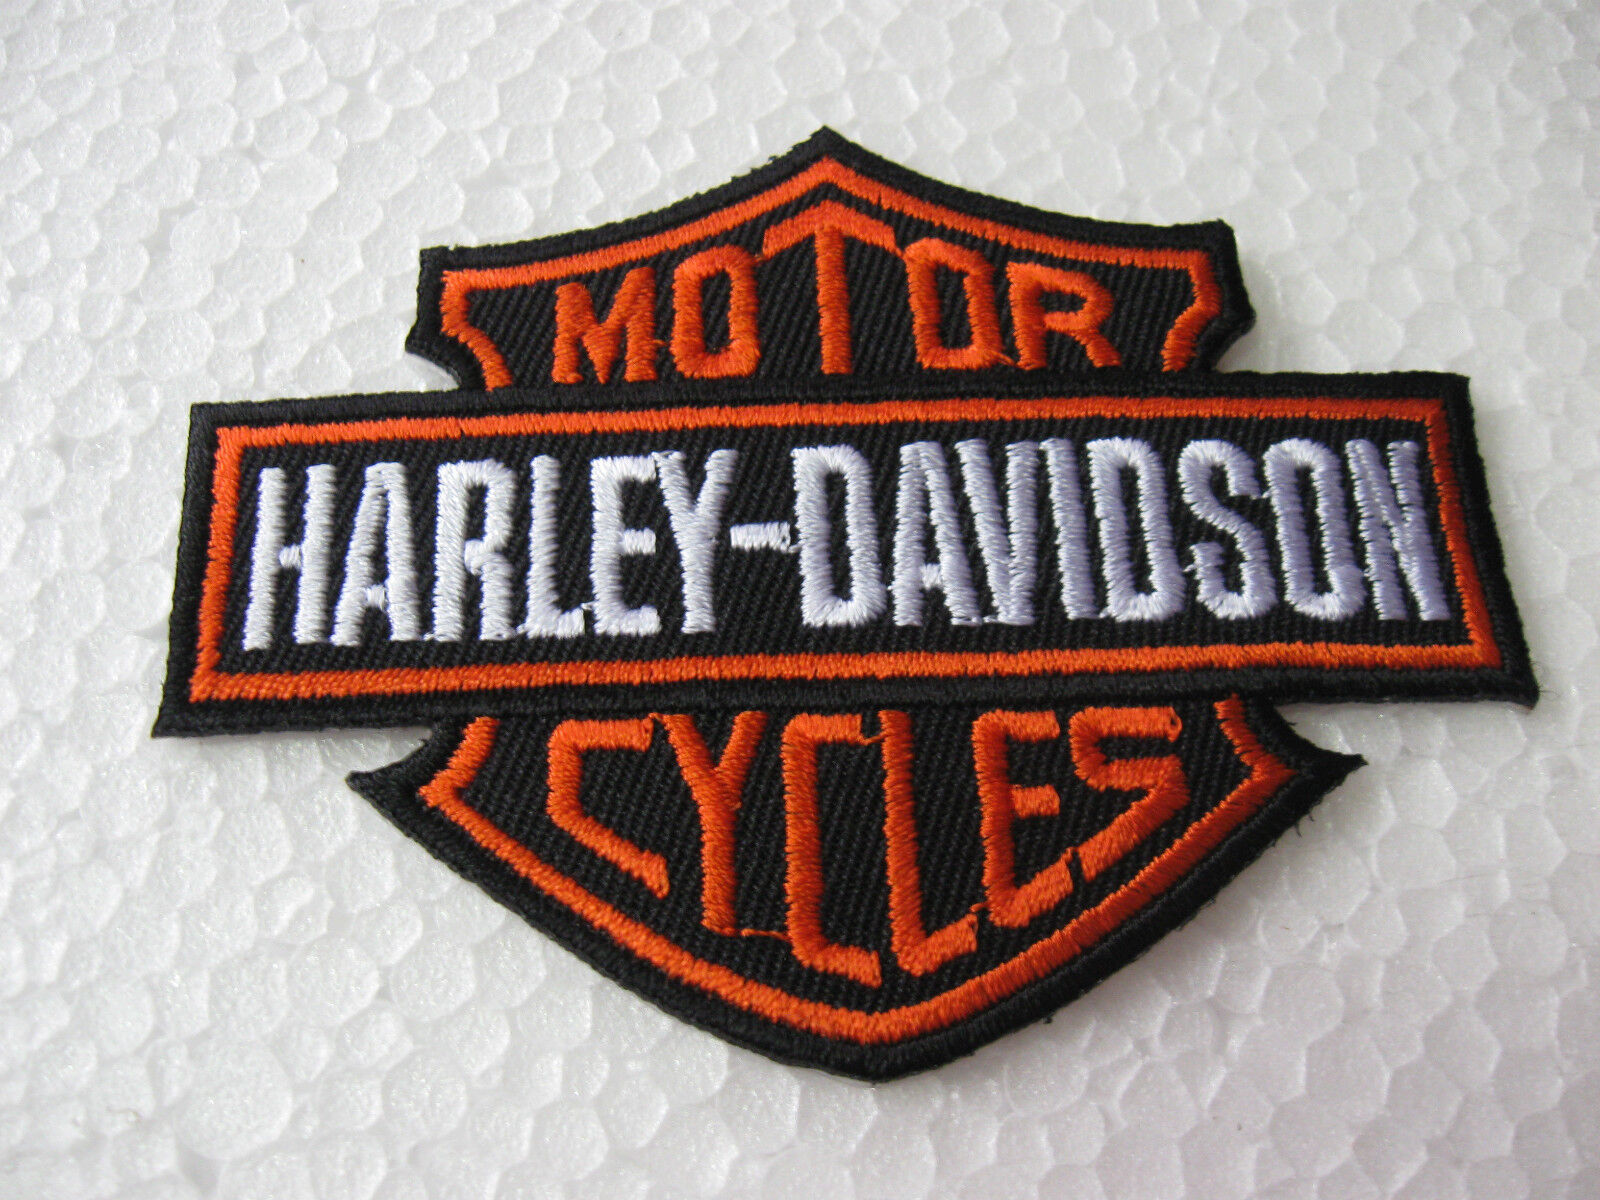 aufn her patch motorcycles harley davidson racing. Black Bedroom Furniture Sets. Home Design Ideas